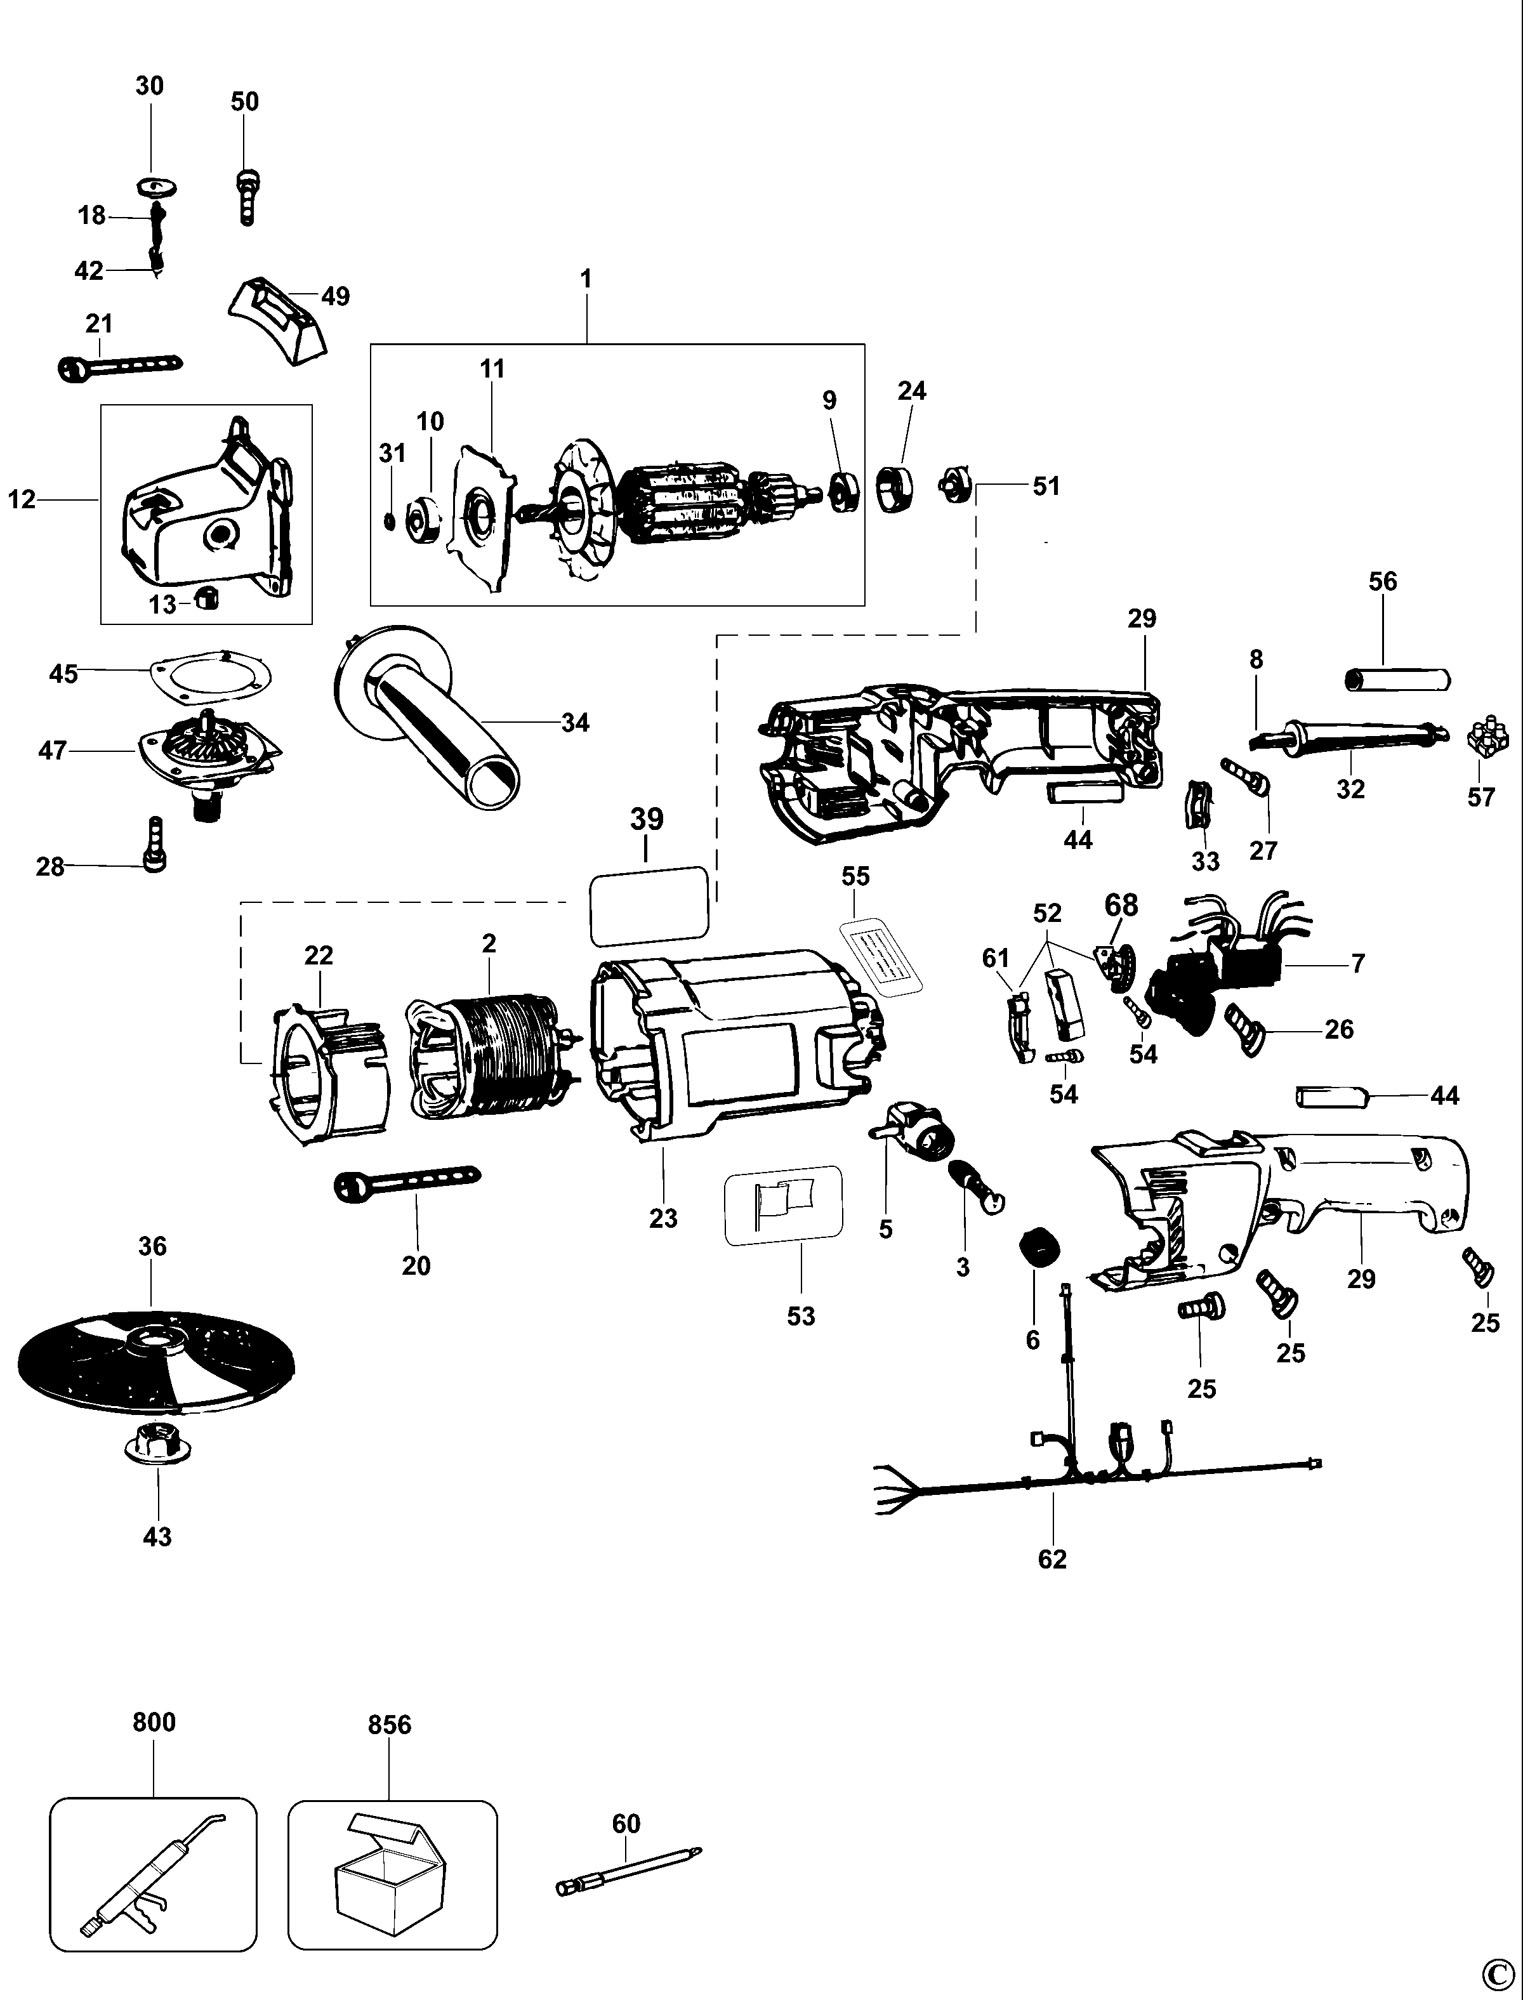 Spares For Dewalt Dw849 Sander Polisher Type 3 Spare Dw849 Type 3 From Power Tool Centre